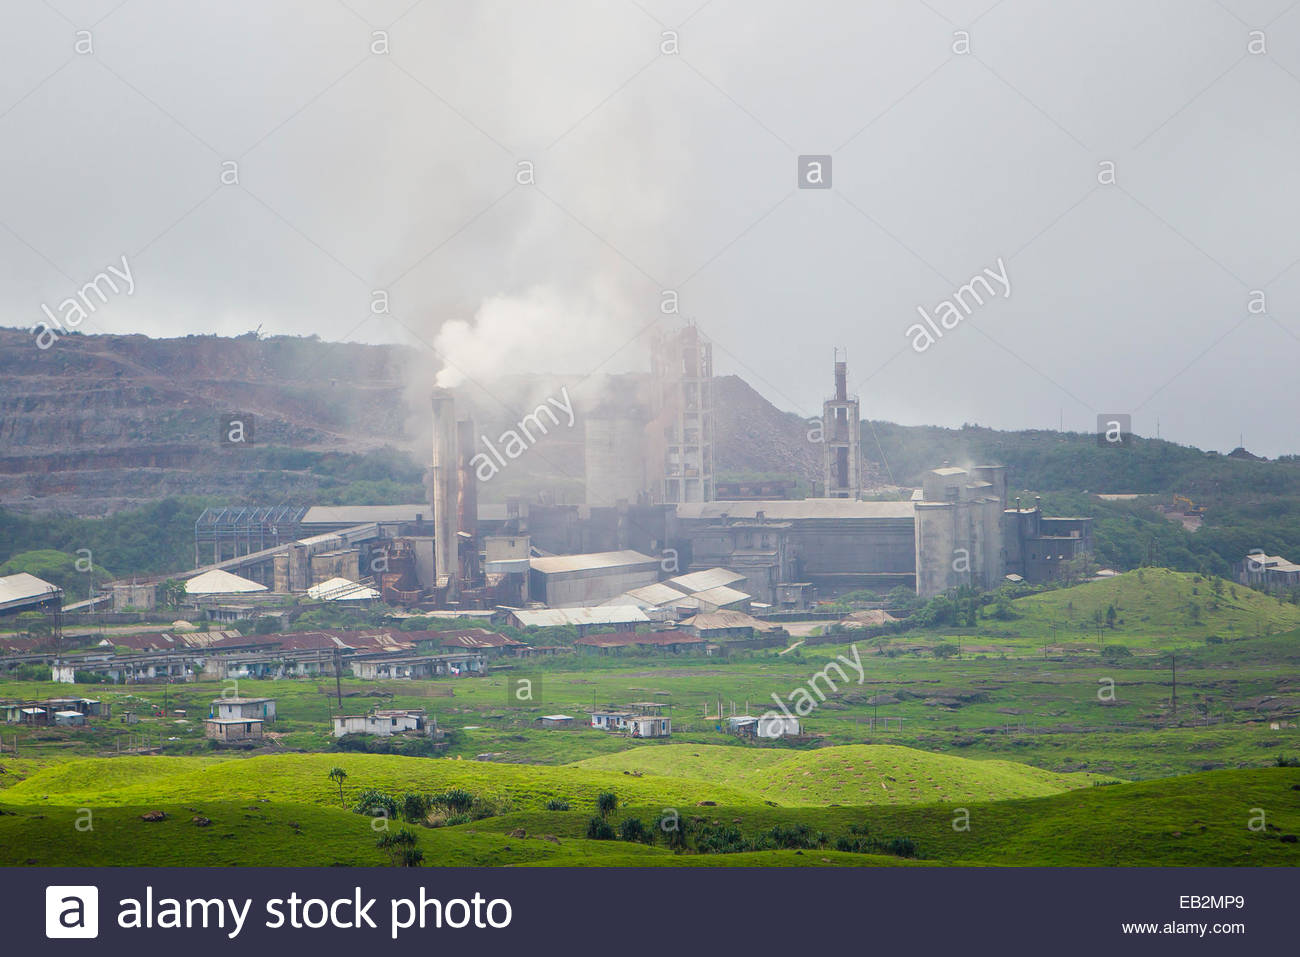 Dust, smoke, and other pollutants rising from and filling the air surrounding the Mawmluh Cement Plant. - Stock Image